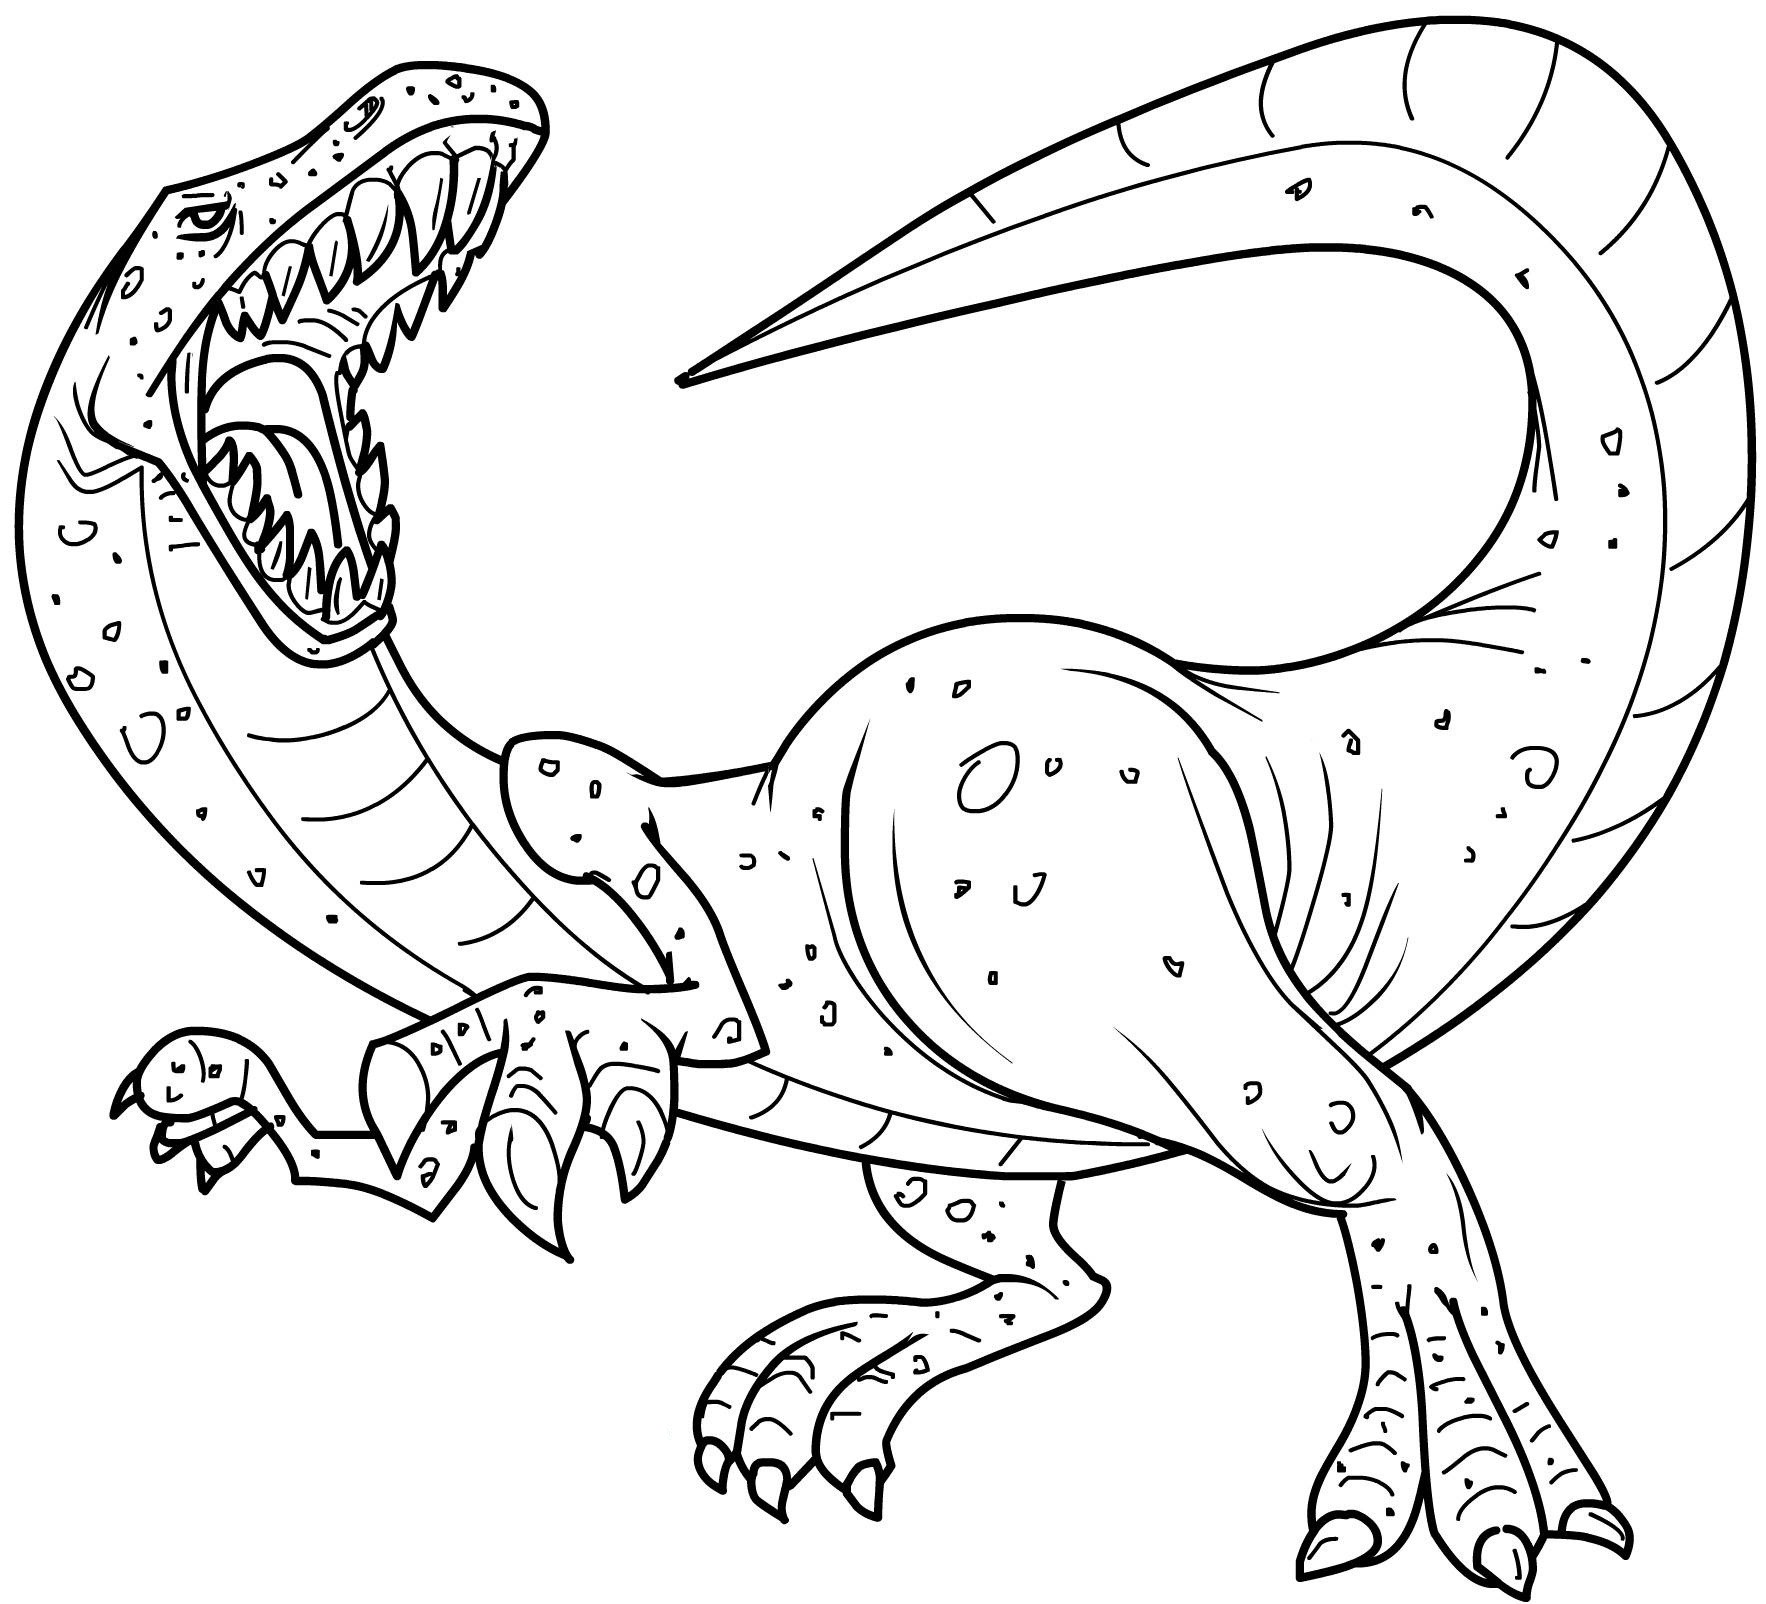 Dinosaur coloring #7, Download drawings